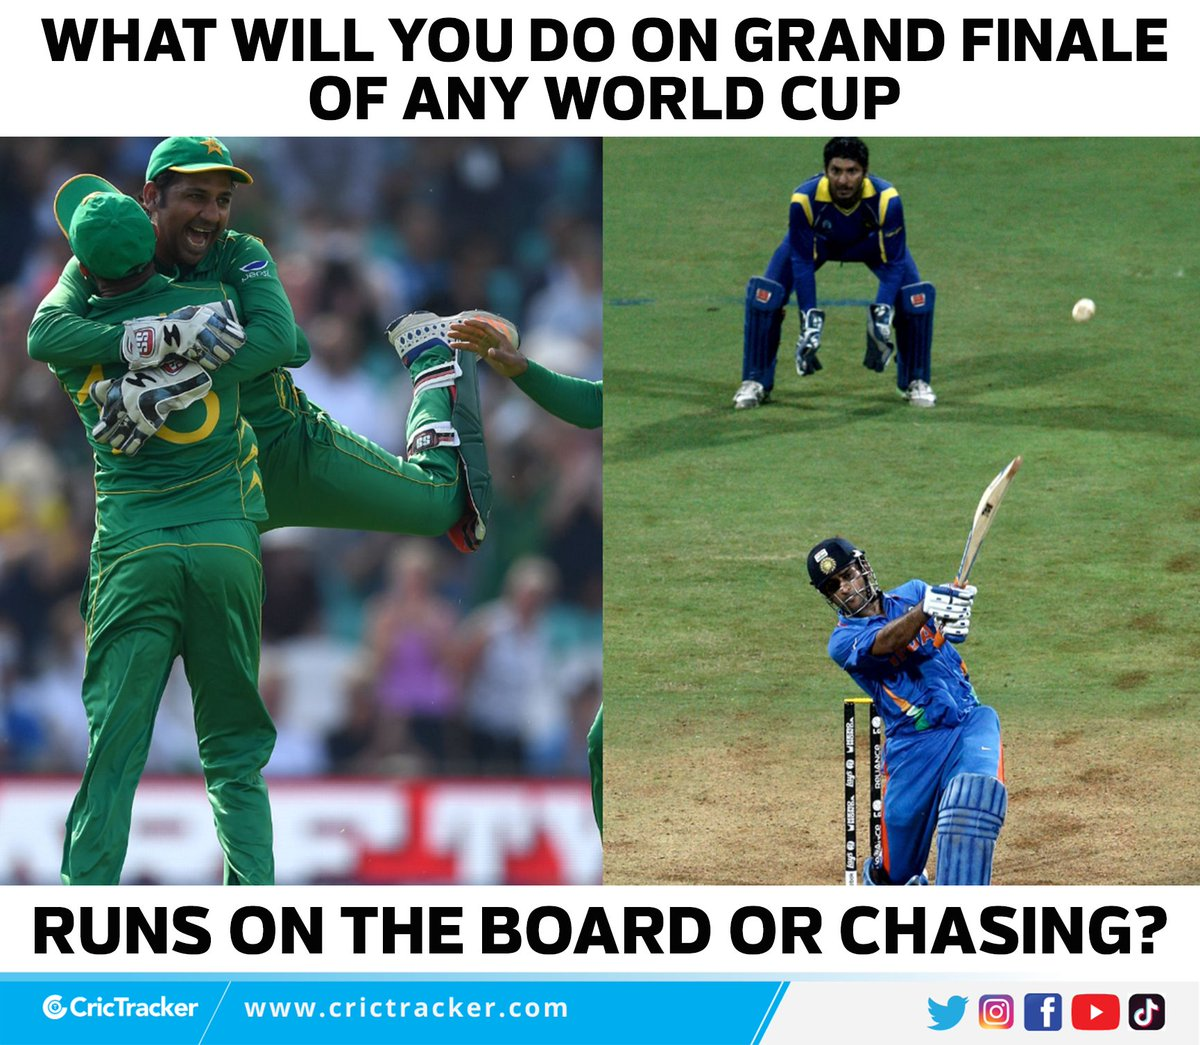 What should your team needs to do if wins the toss in grand final of World Cup?  #MSDhoni #WorldCup #SarfarazAhmed #T20WorldCup #Cricket #CricTracker https://t.co/l5WK9Fgwyg